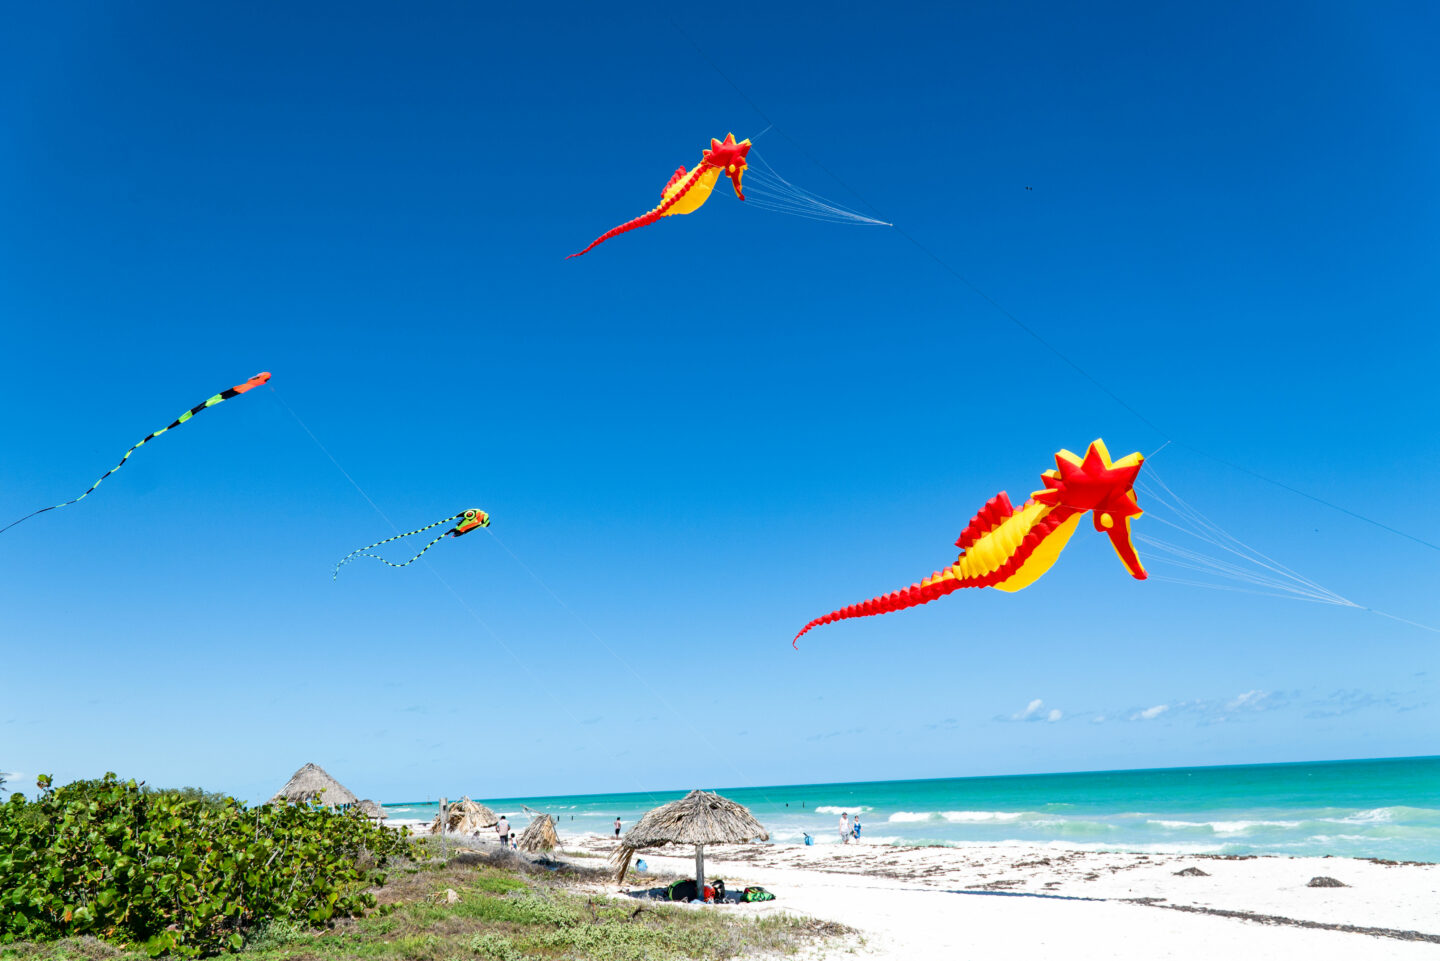 Kites flying over the beach in El Cuyo. El Cuyo comprises part of the Rio Lagartos Reserve with approximately 18,000 species of birds.